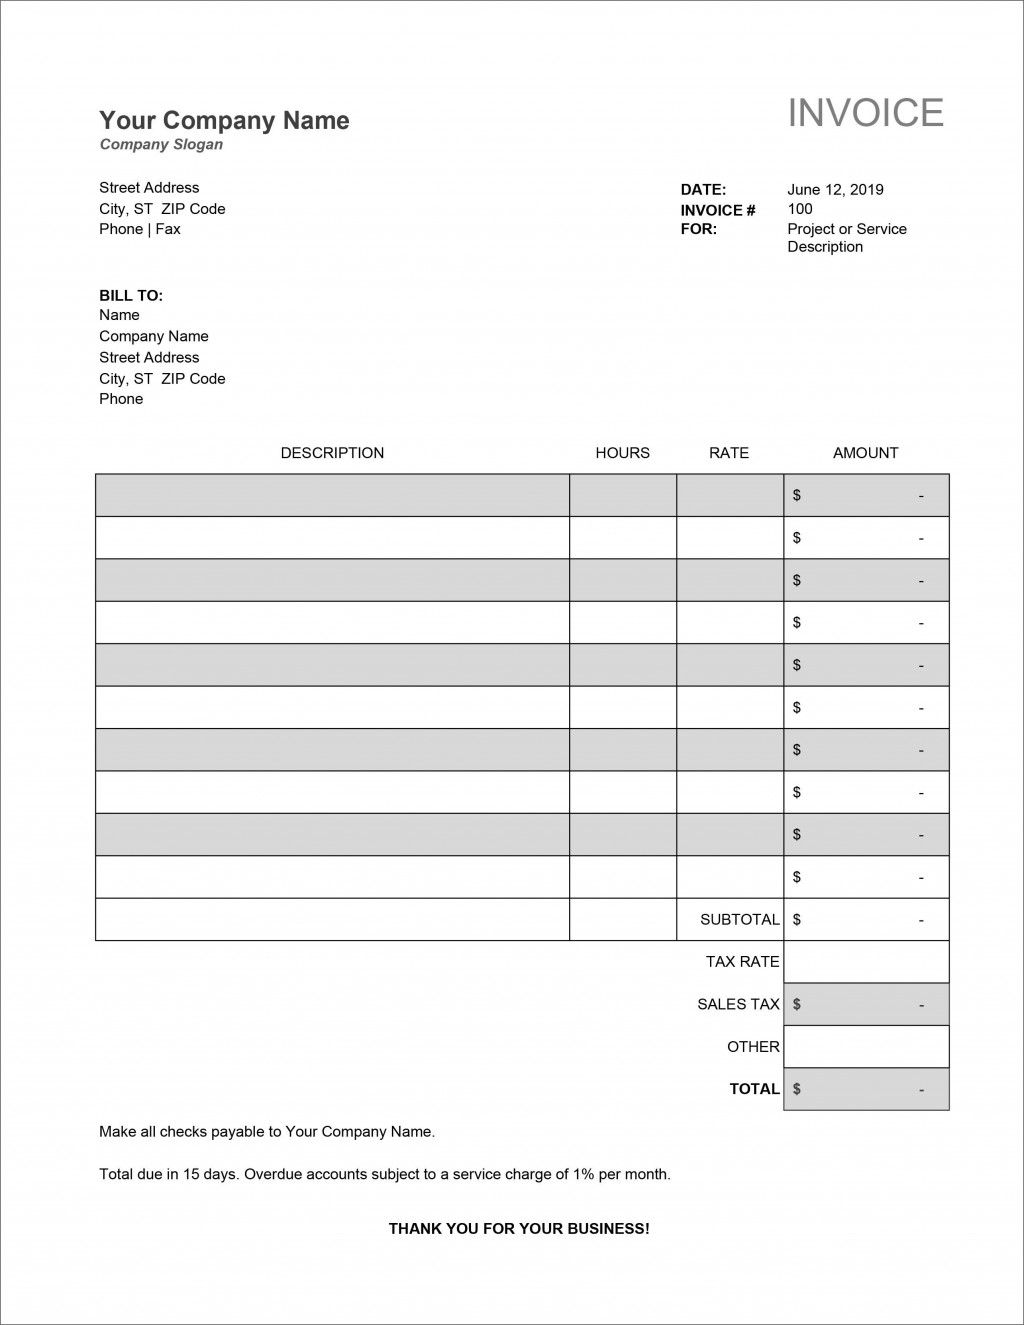 007 Unforgettable Service Invoice Template Free Picture  Rendered Word Auto DownloadLarge